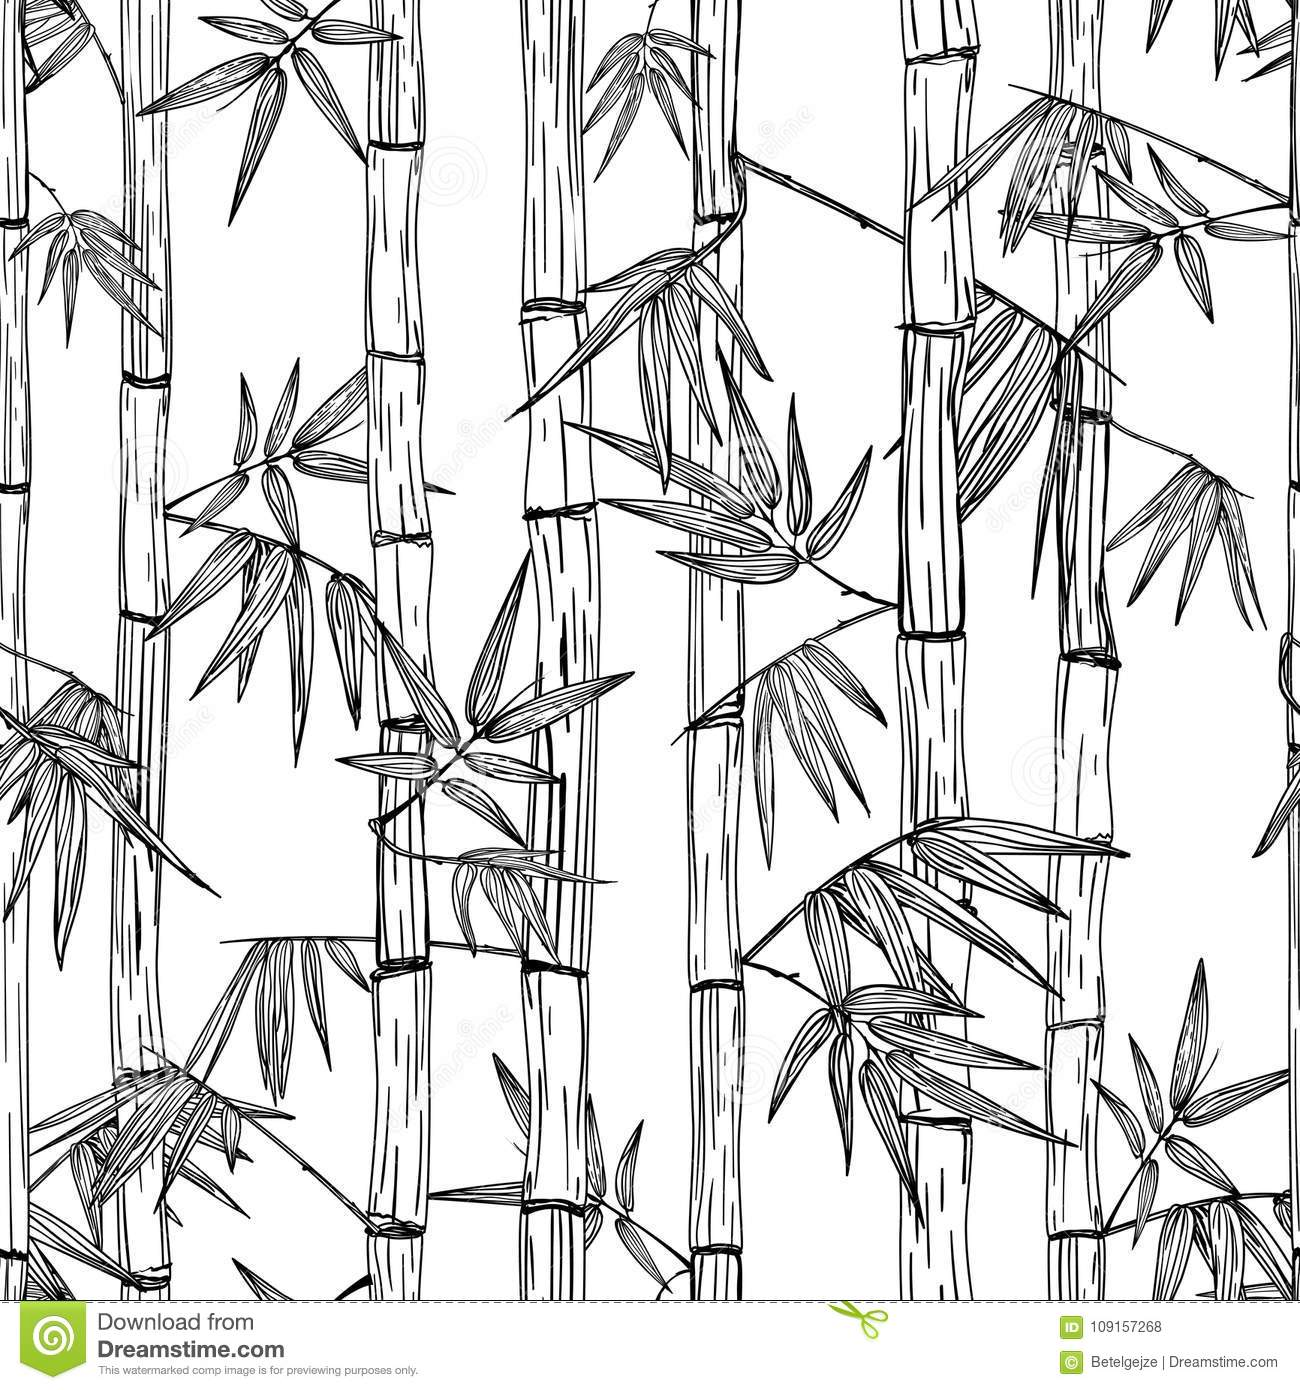 Fashion Forest Beauty Salon: Vector Seamless Bamboo Forest Pattern. Design For Textile